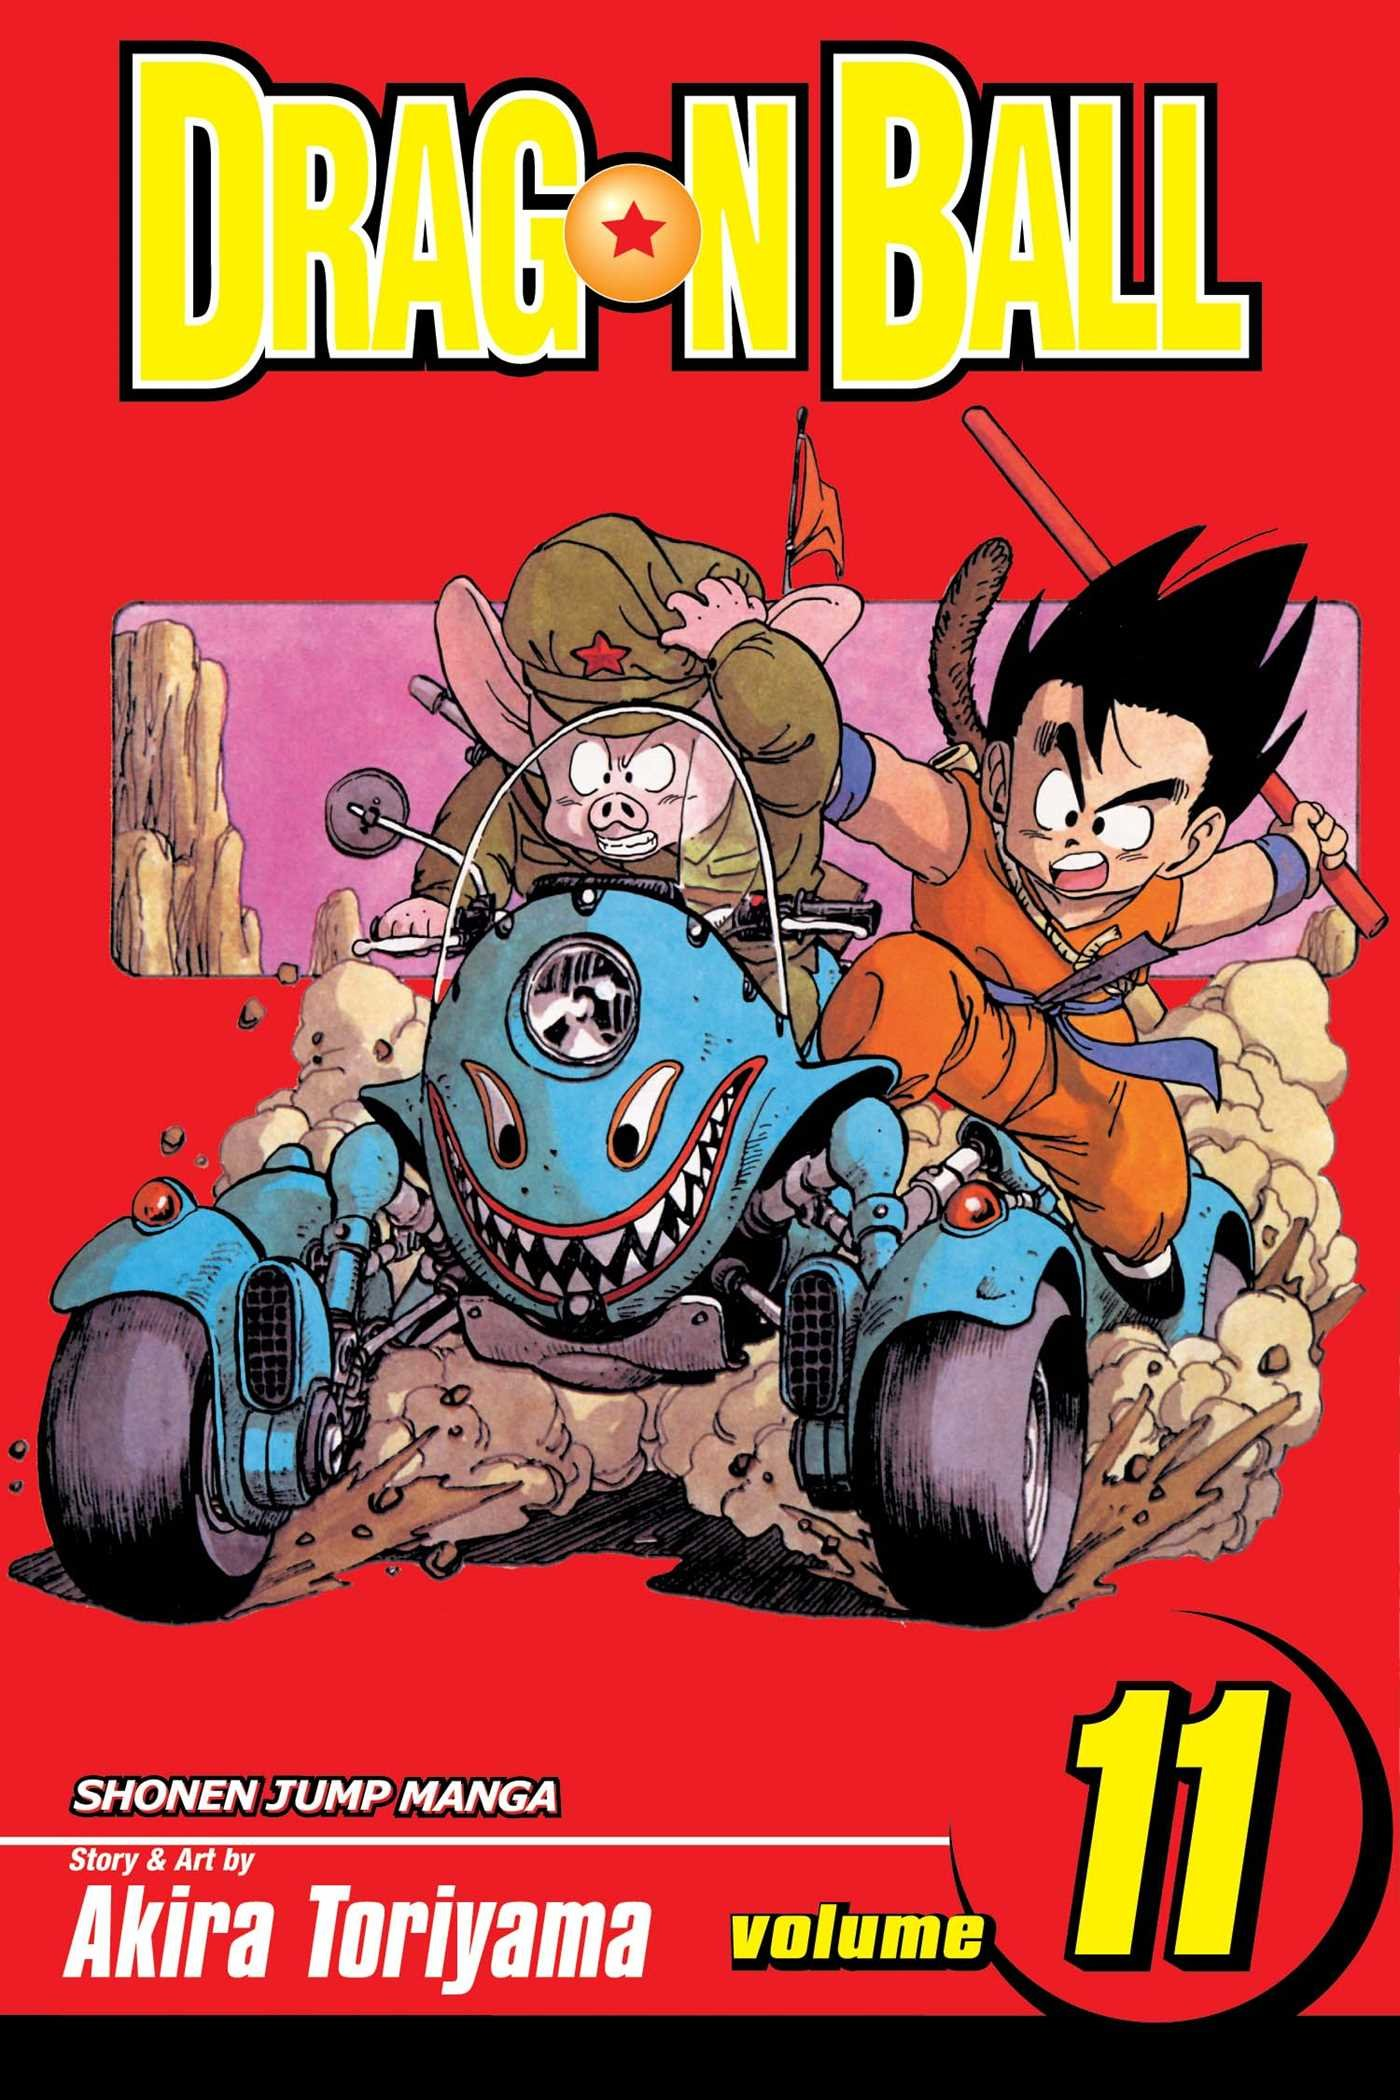 The cover of Viz's English language release of Dragon Ball Volume 11, featuring artwork by Akira Toriyama of Goku and Oolong attempting to ride an out-of-control four-wheeled motorcycle.